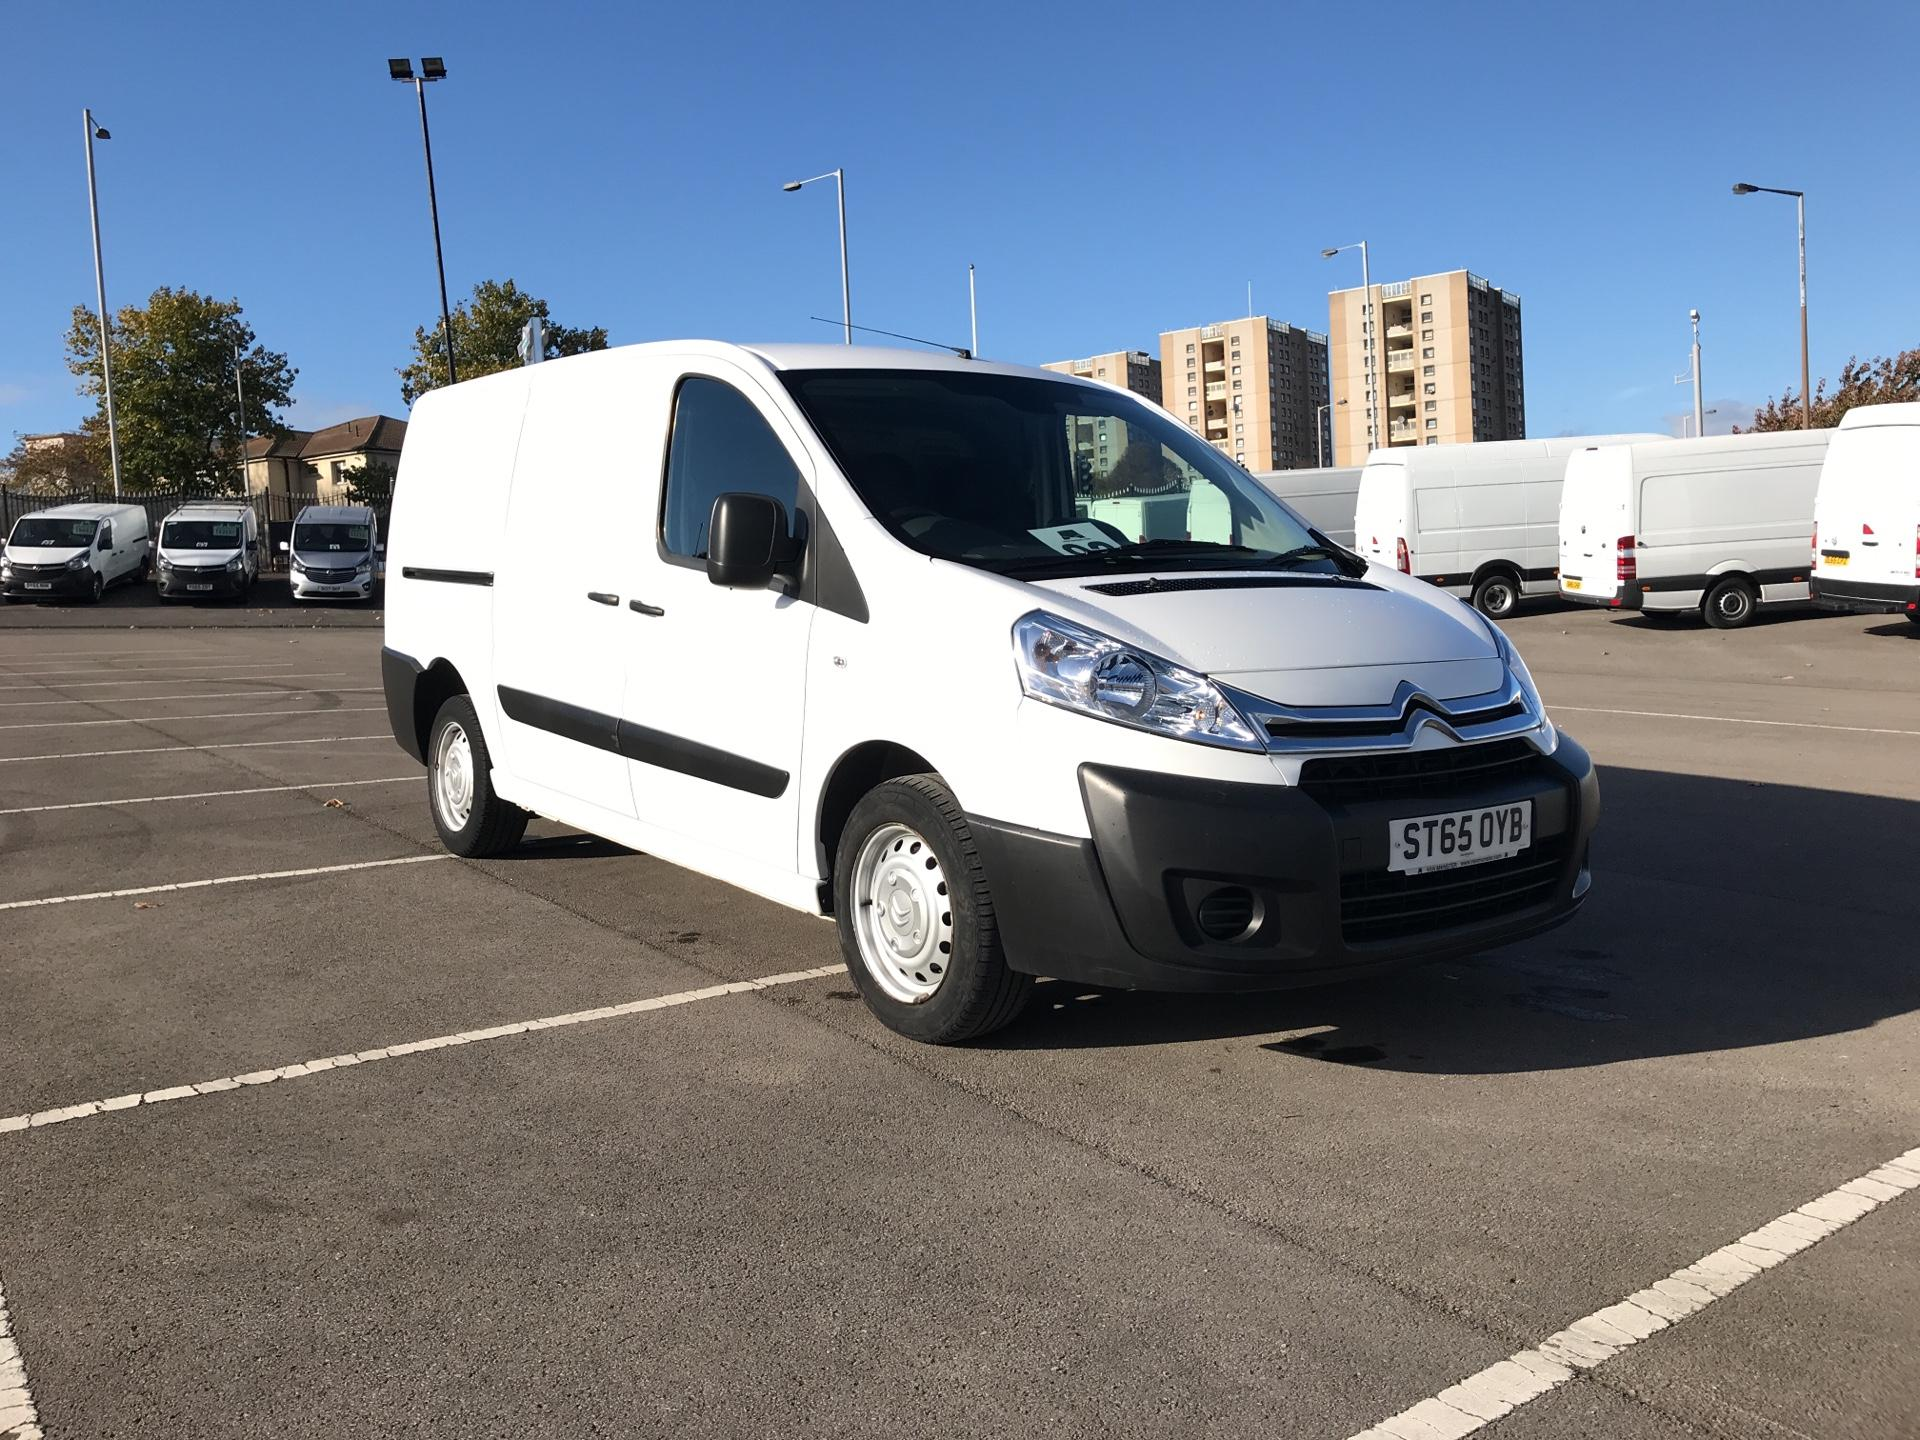 2015 Citroen Dispatch 1200 2.0 Hdi 125 L2 H1 Van Enterprise Euro 5 (ST65OYB)